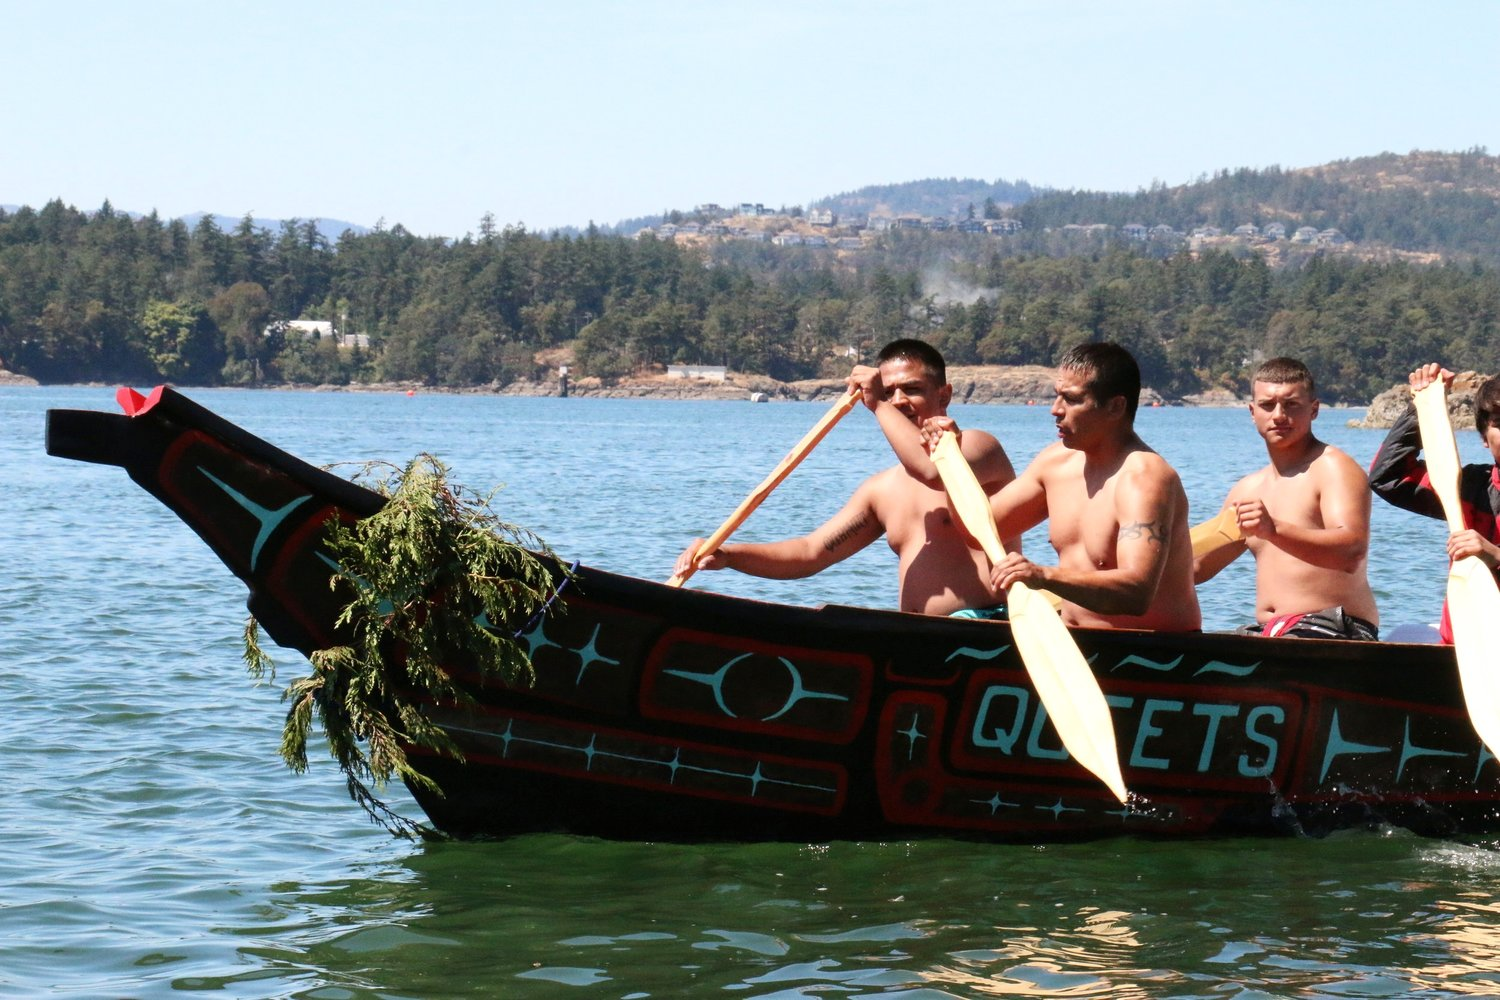 Queets Canoe